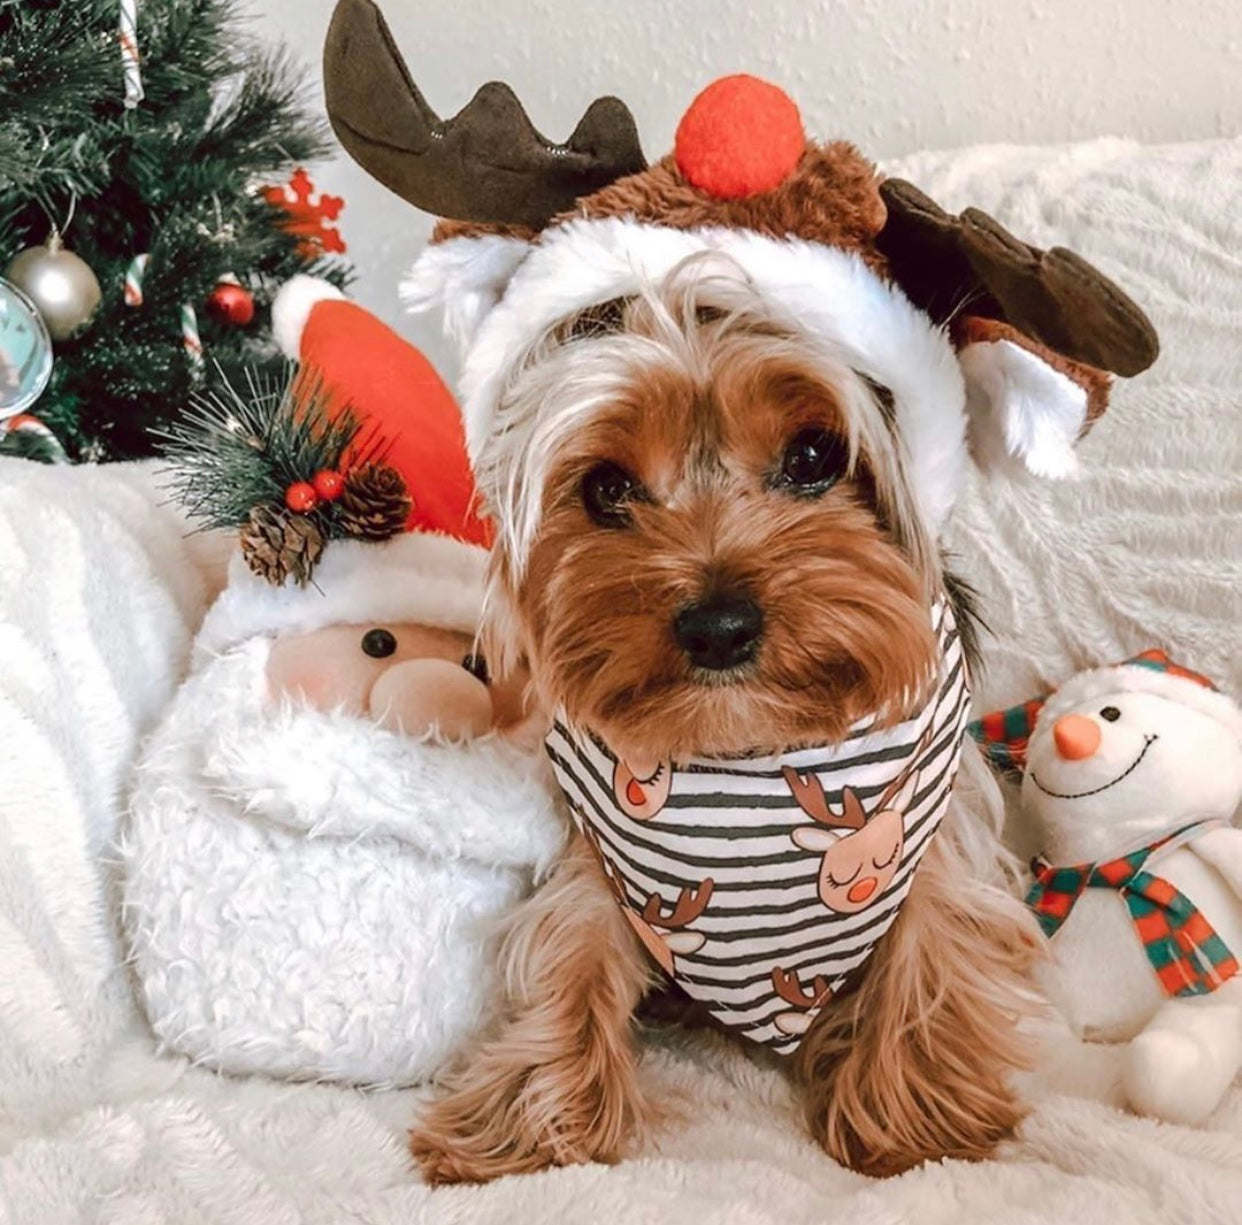 12 Dogs that are Holiday ready